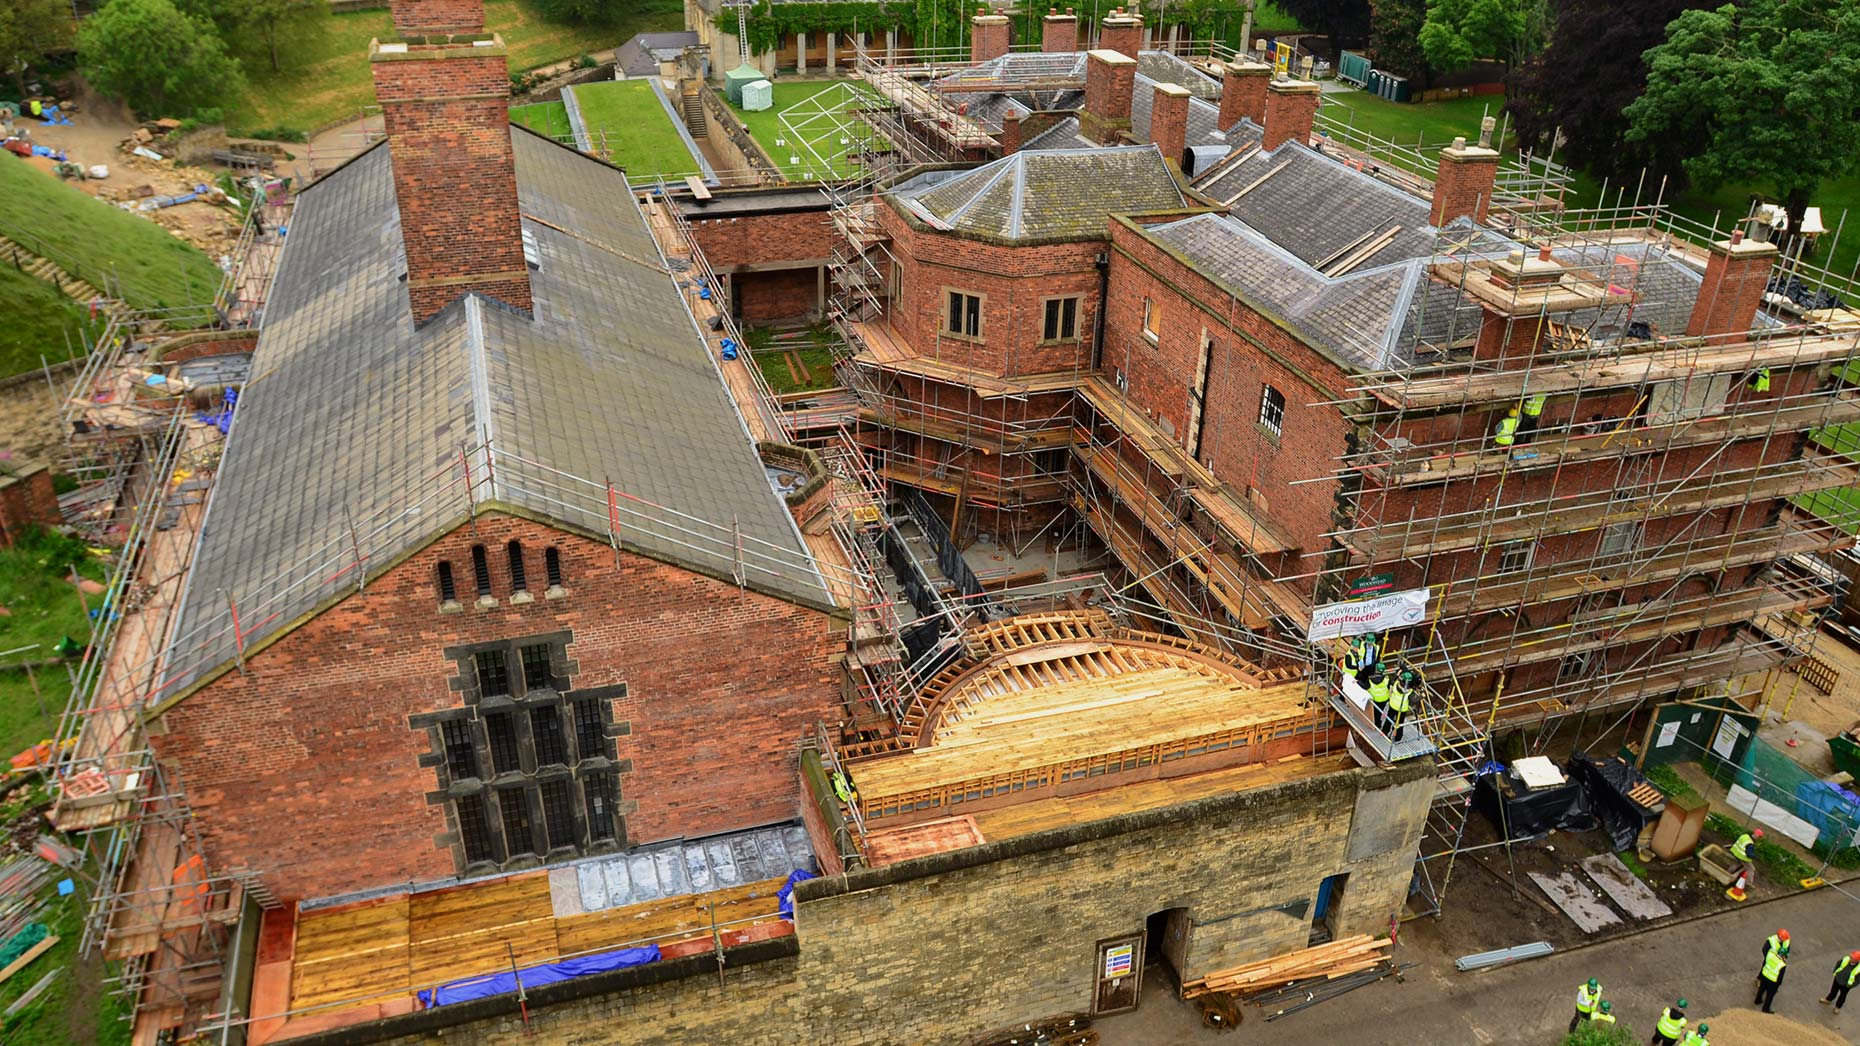 Lincoln's new Magna Carta vault will be ready in time for the 800th anniversary of the sealing of the document. Photo: Steve Smailes for The Lincolnite